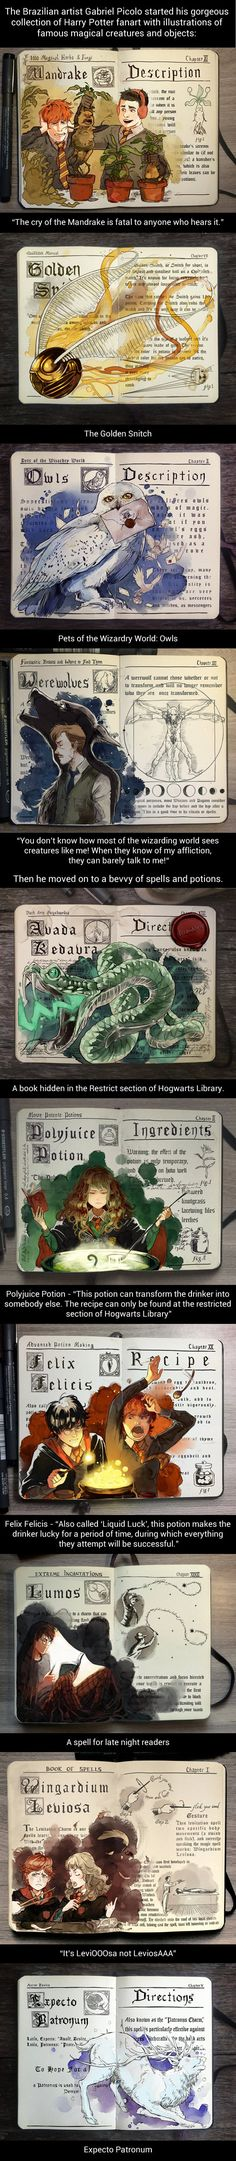 Harry Potter illustrations